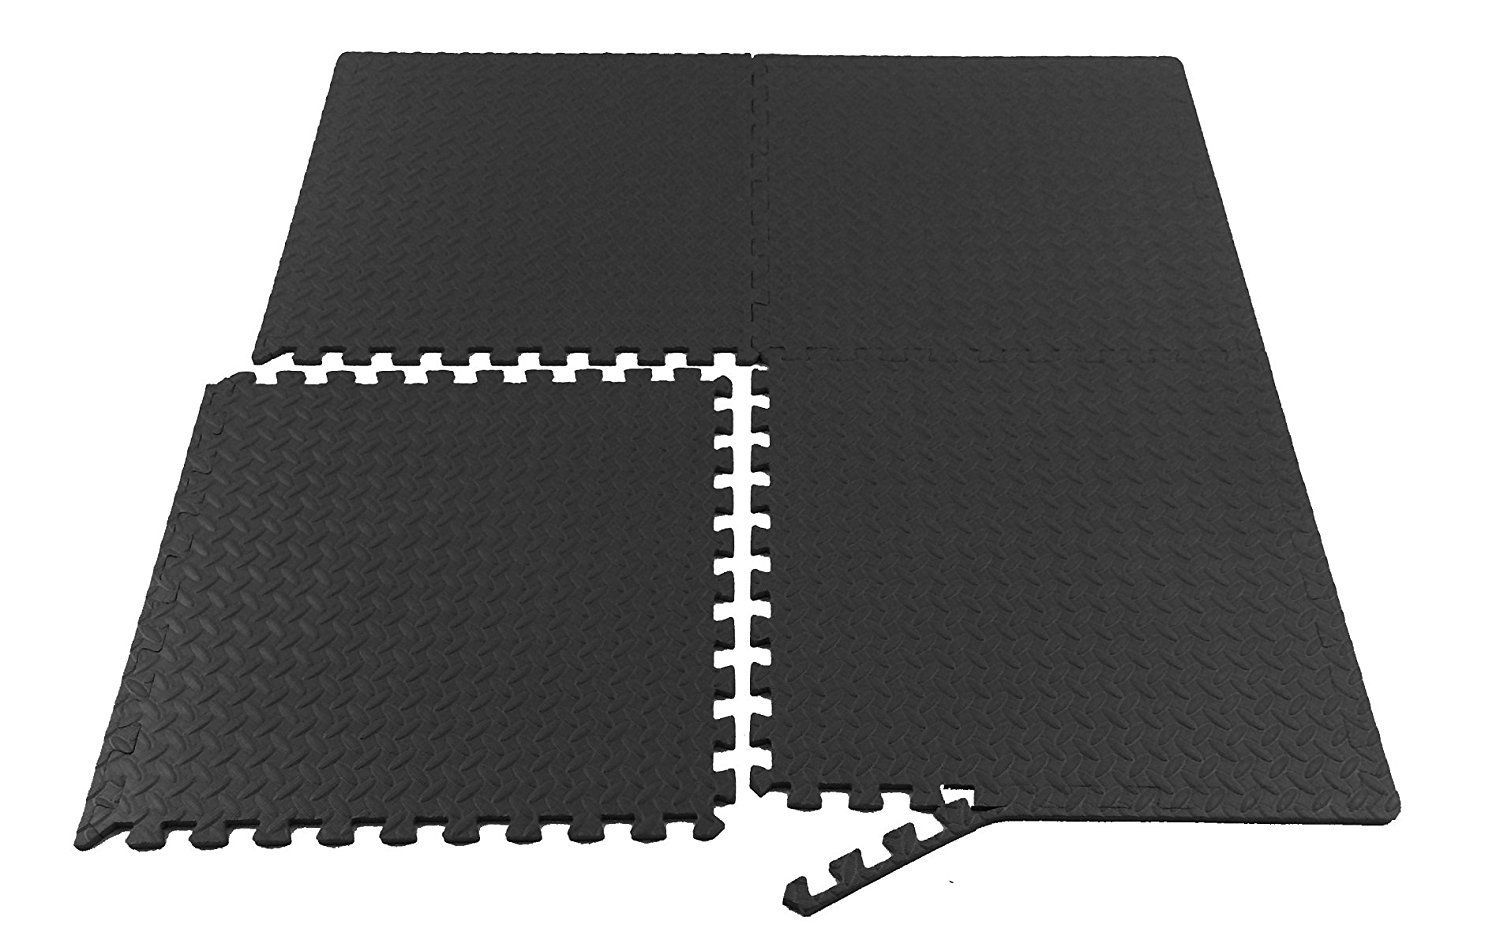 New 24x24 In Eva Foam Work Gym Mats Exercise Mat Evafm